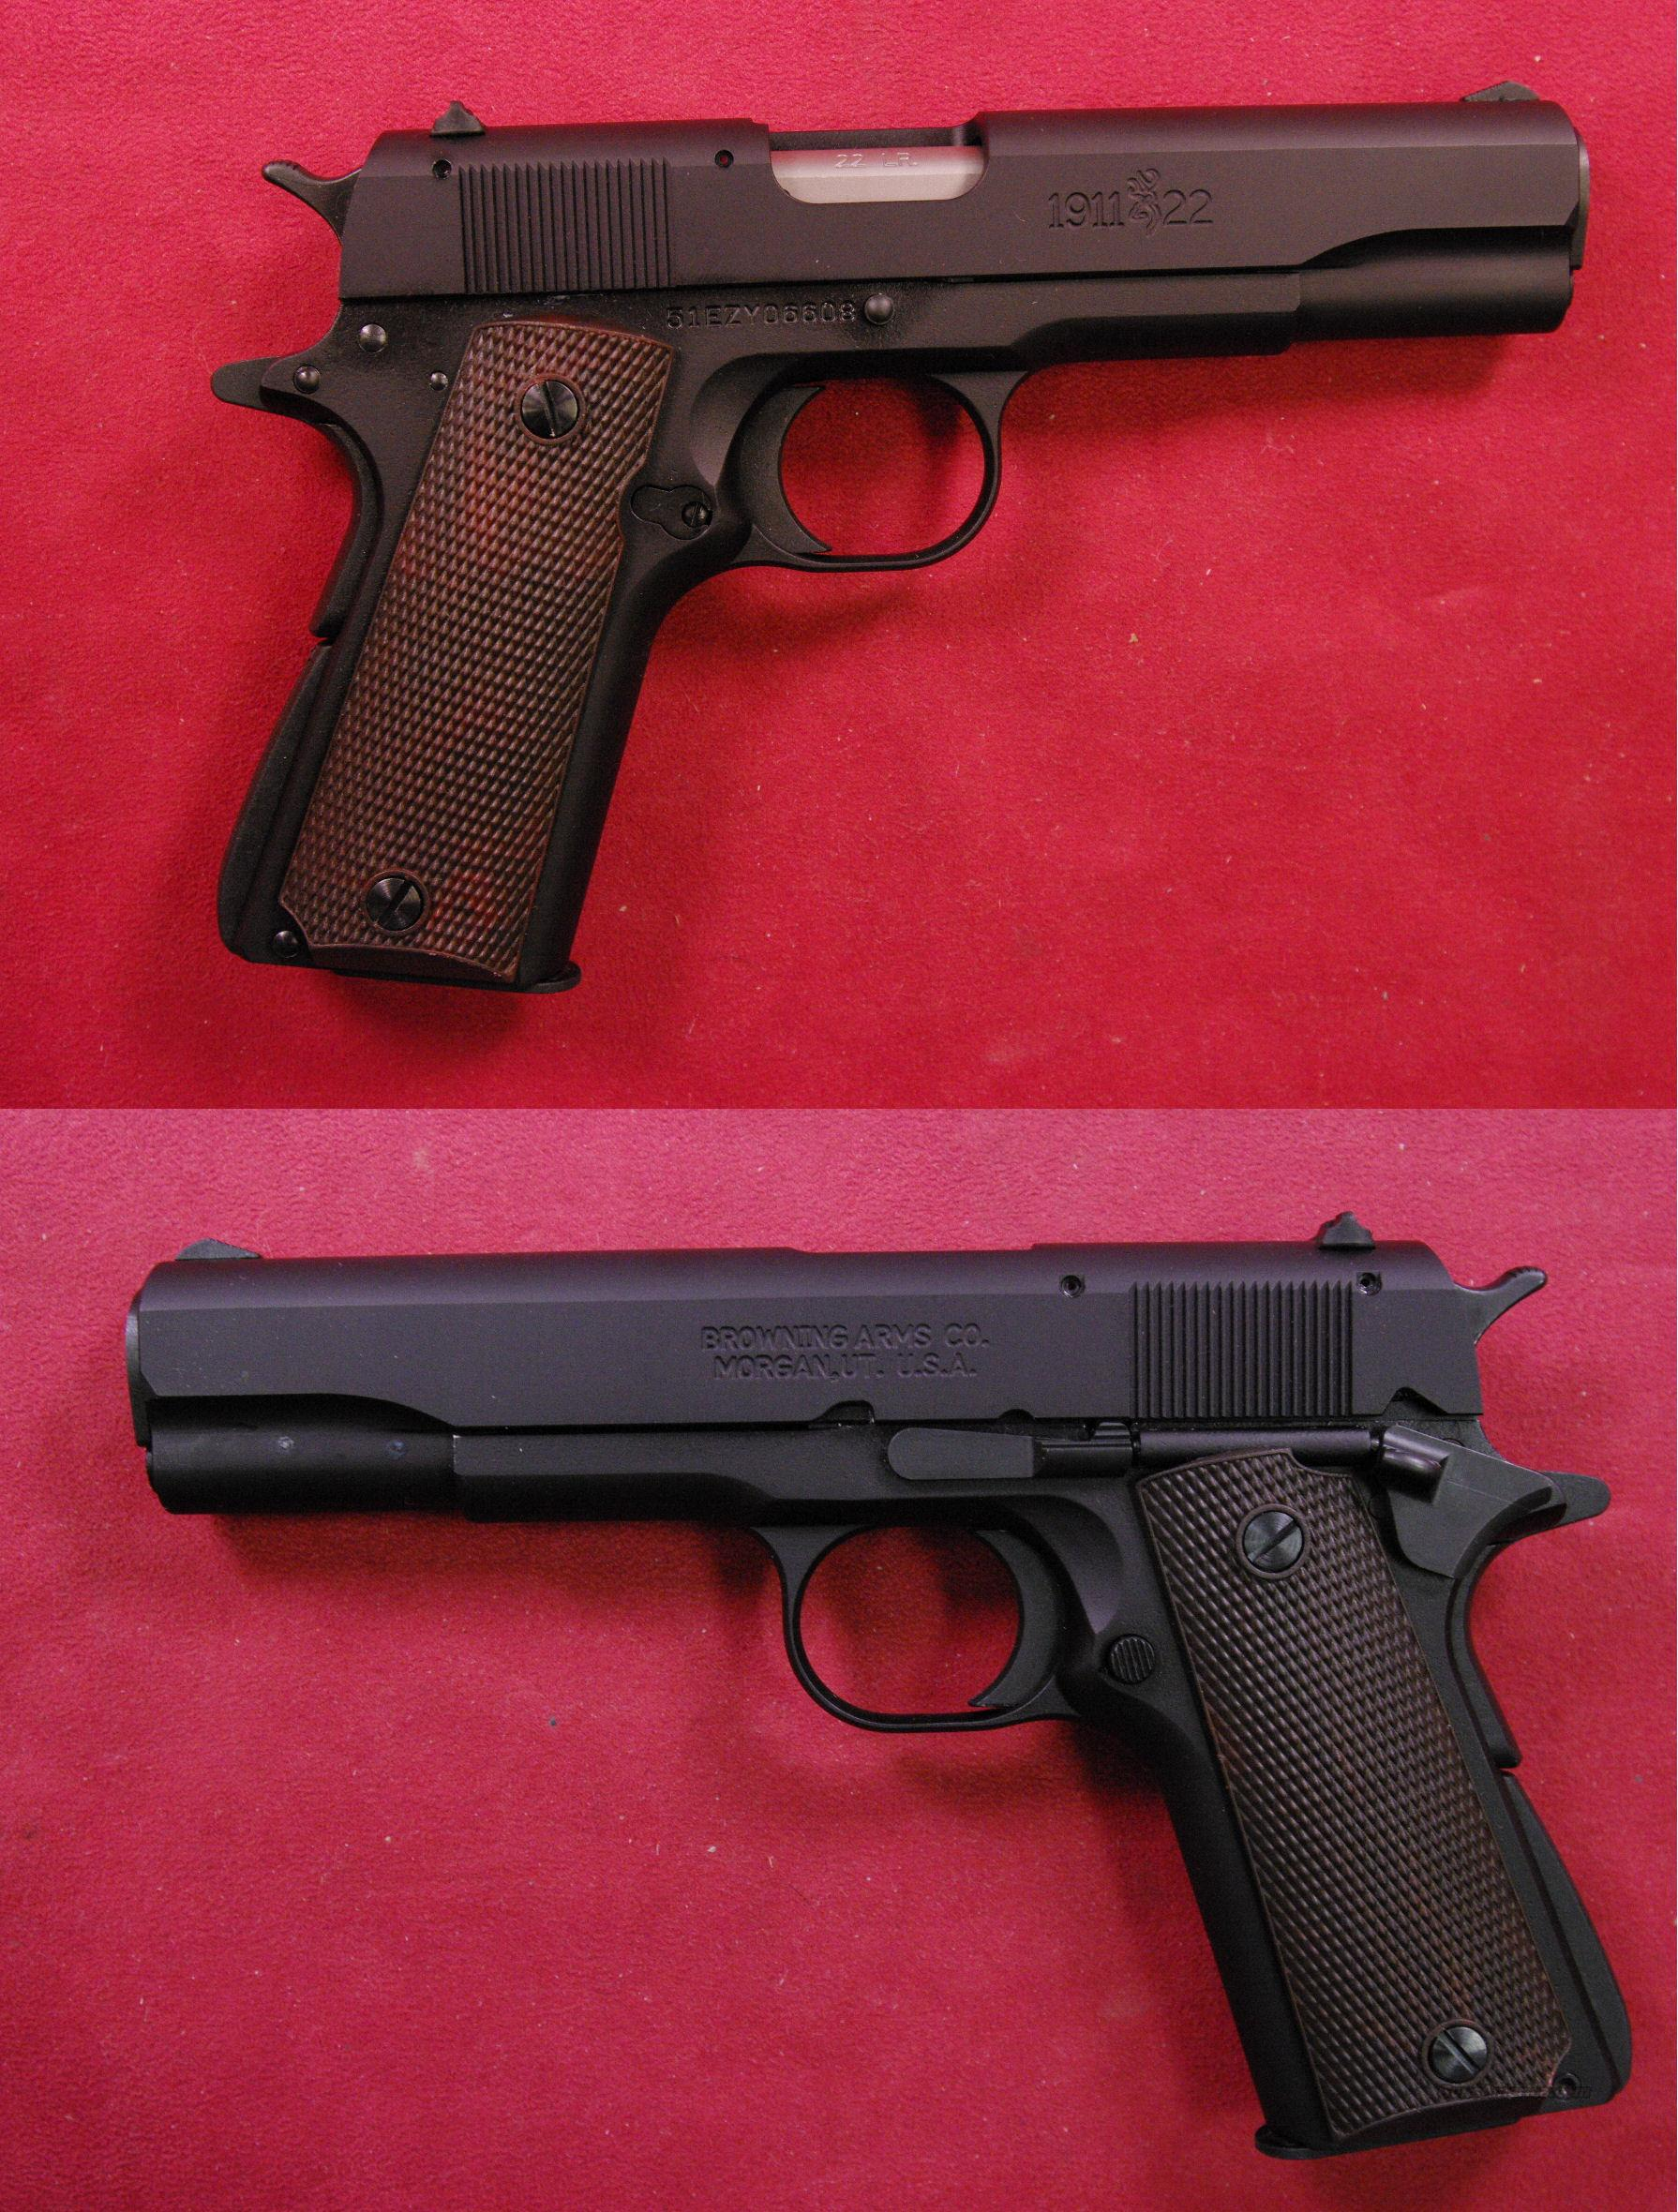 BROWNING 1911-22A1 *MUST CALL*  Guns > Pistols > Browning Pistols > Other Autos